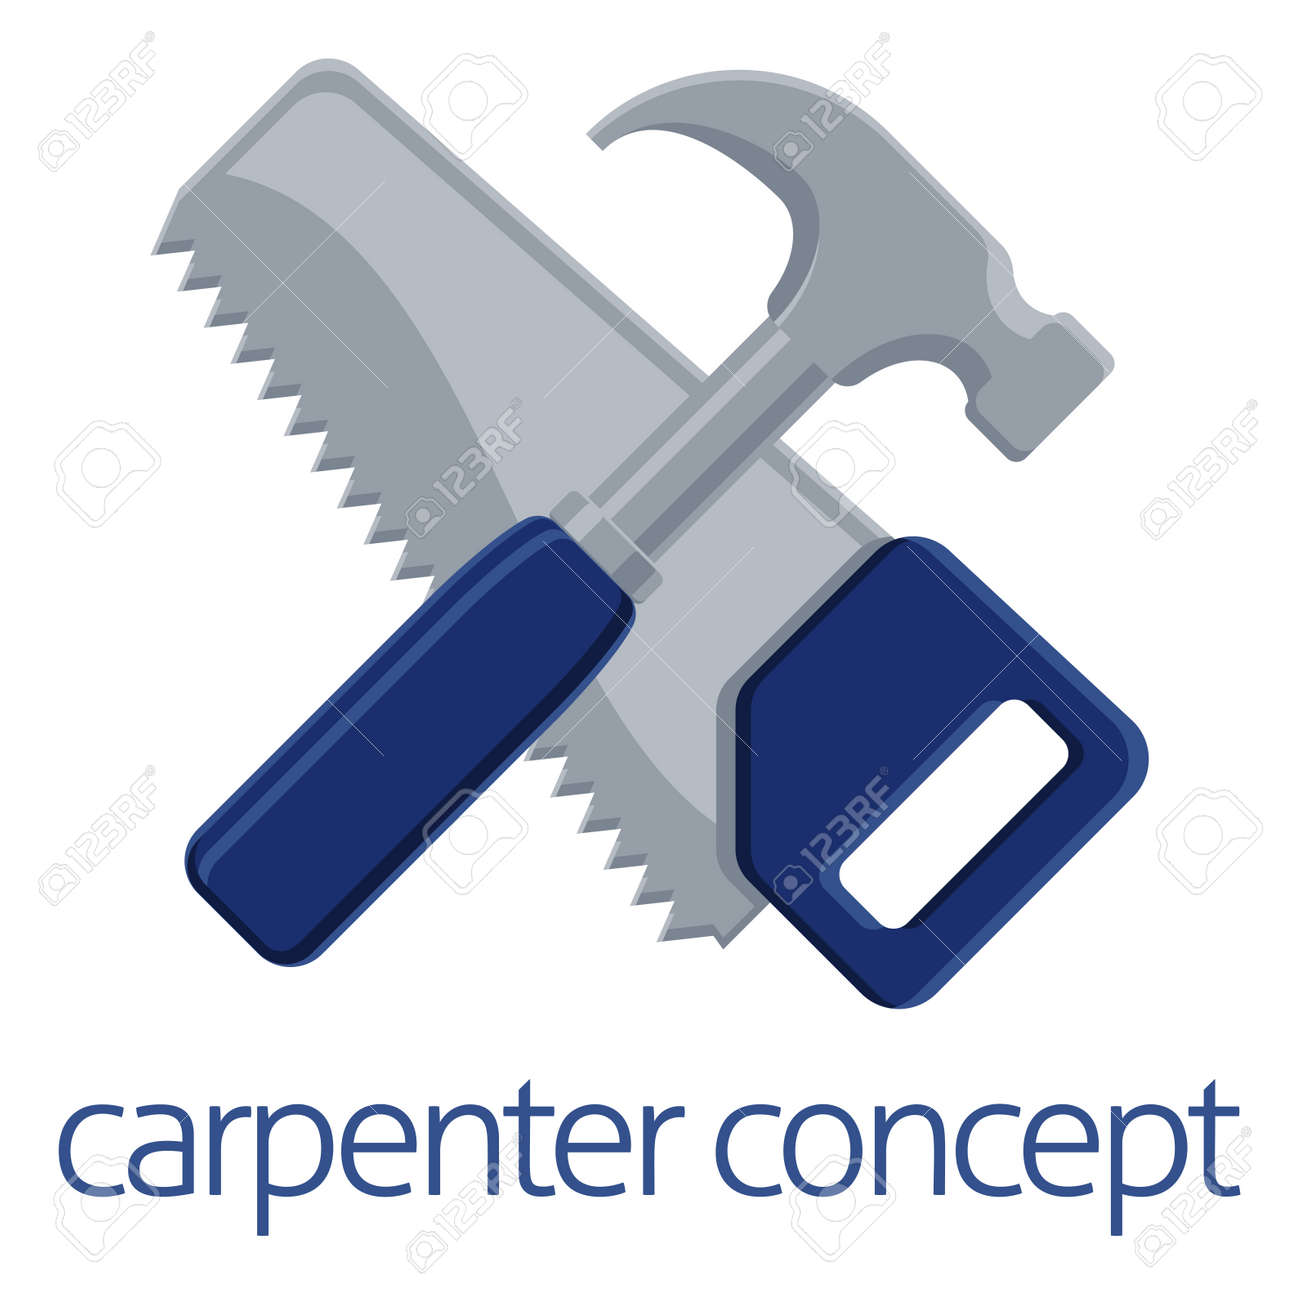 24 661 carpenter cliparts stock vector and royalty free carpenter rh 123rf com carpentry clipart free carpentry clipart images